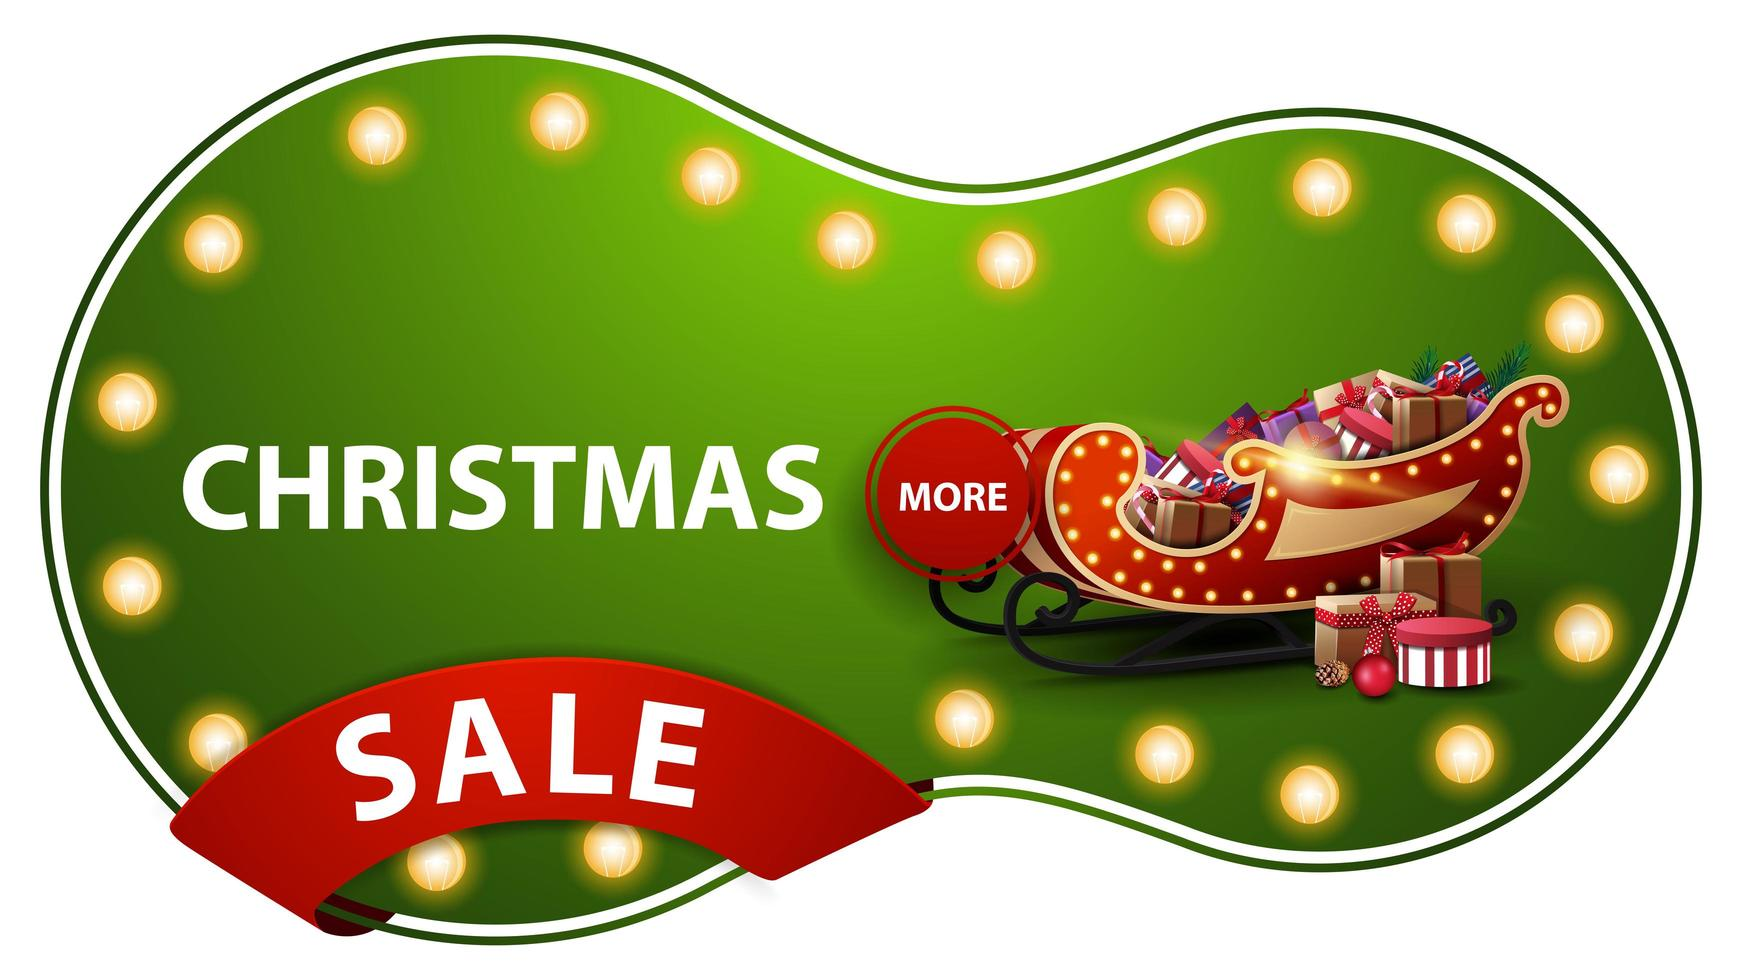 Christmas sale, green discount banner with light bulbs, red ribbon and Santa Sleigh with presents vector